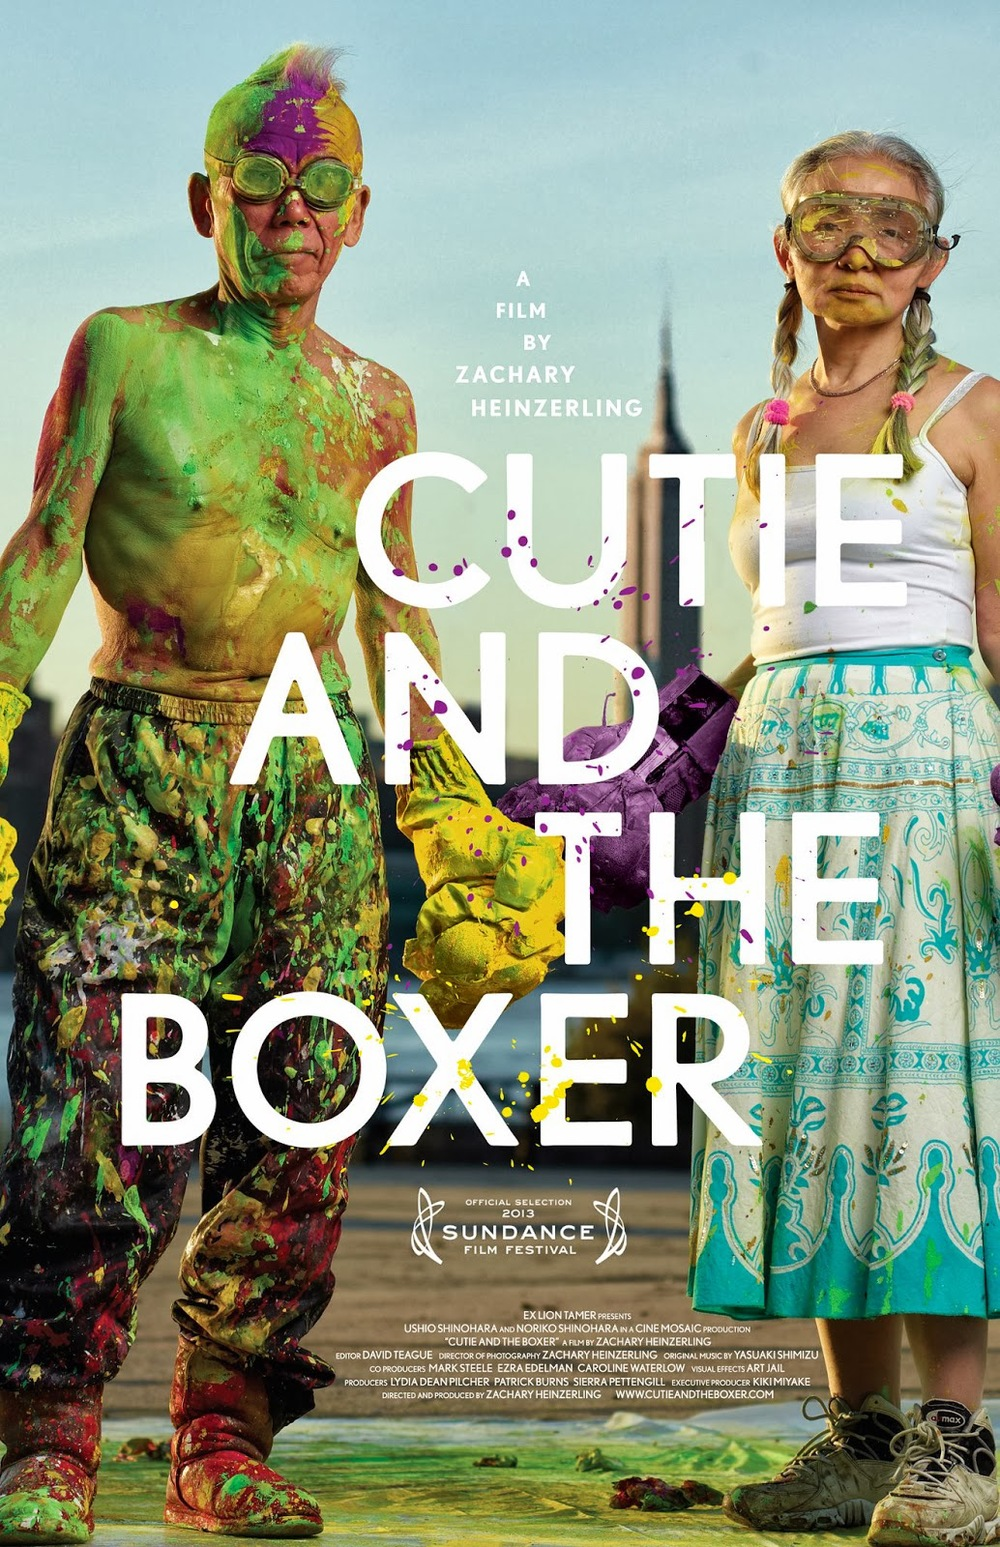 Cutie and the boxer.jpg